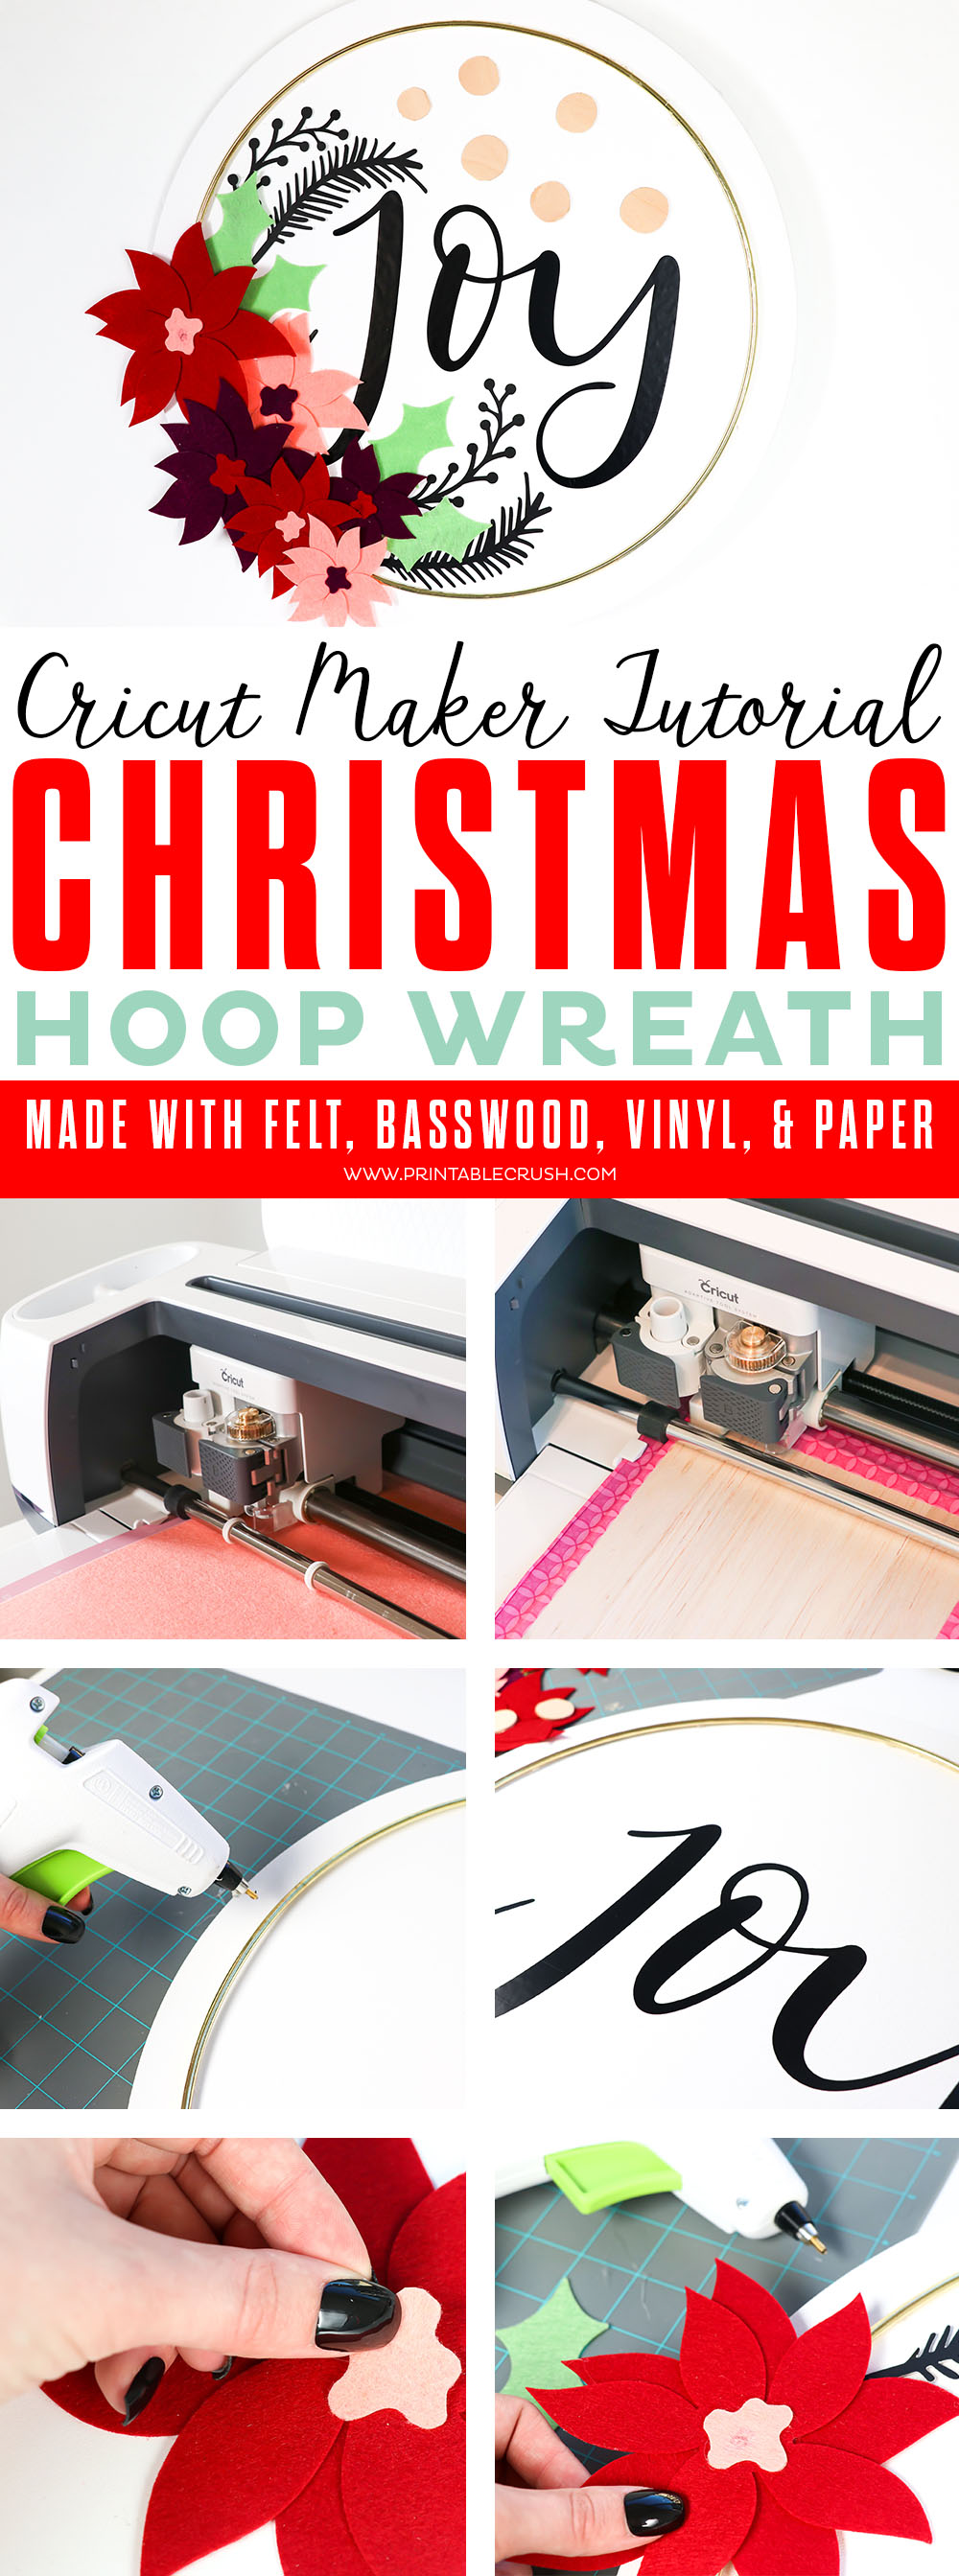 Make this gorgeous Canvas Christmas Hoop Wreath Tutorial using felt, paper, vinyl, and basswood cut outs from the Cricut Maker.  #cricutmaker #cricutmade #sayitwithcricut #christmaswreath #hoopwreathtutorial via @printablecrush